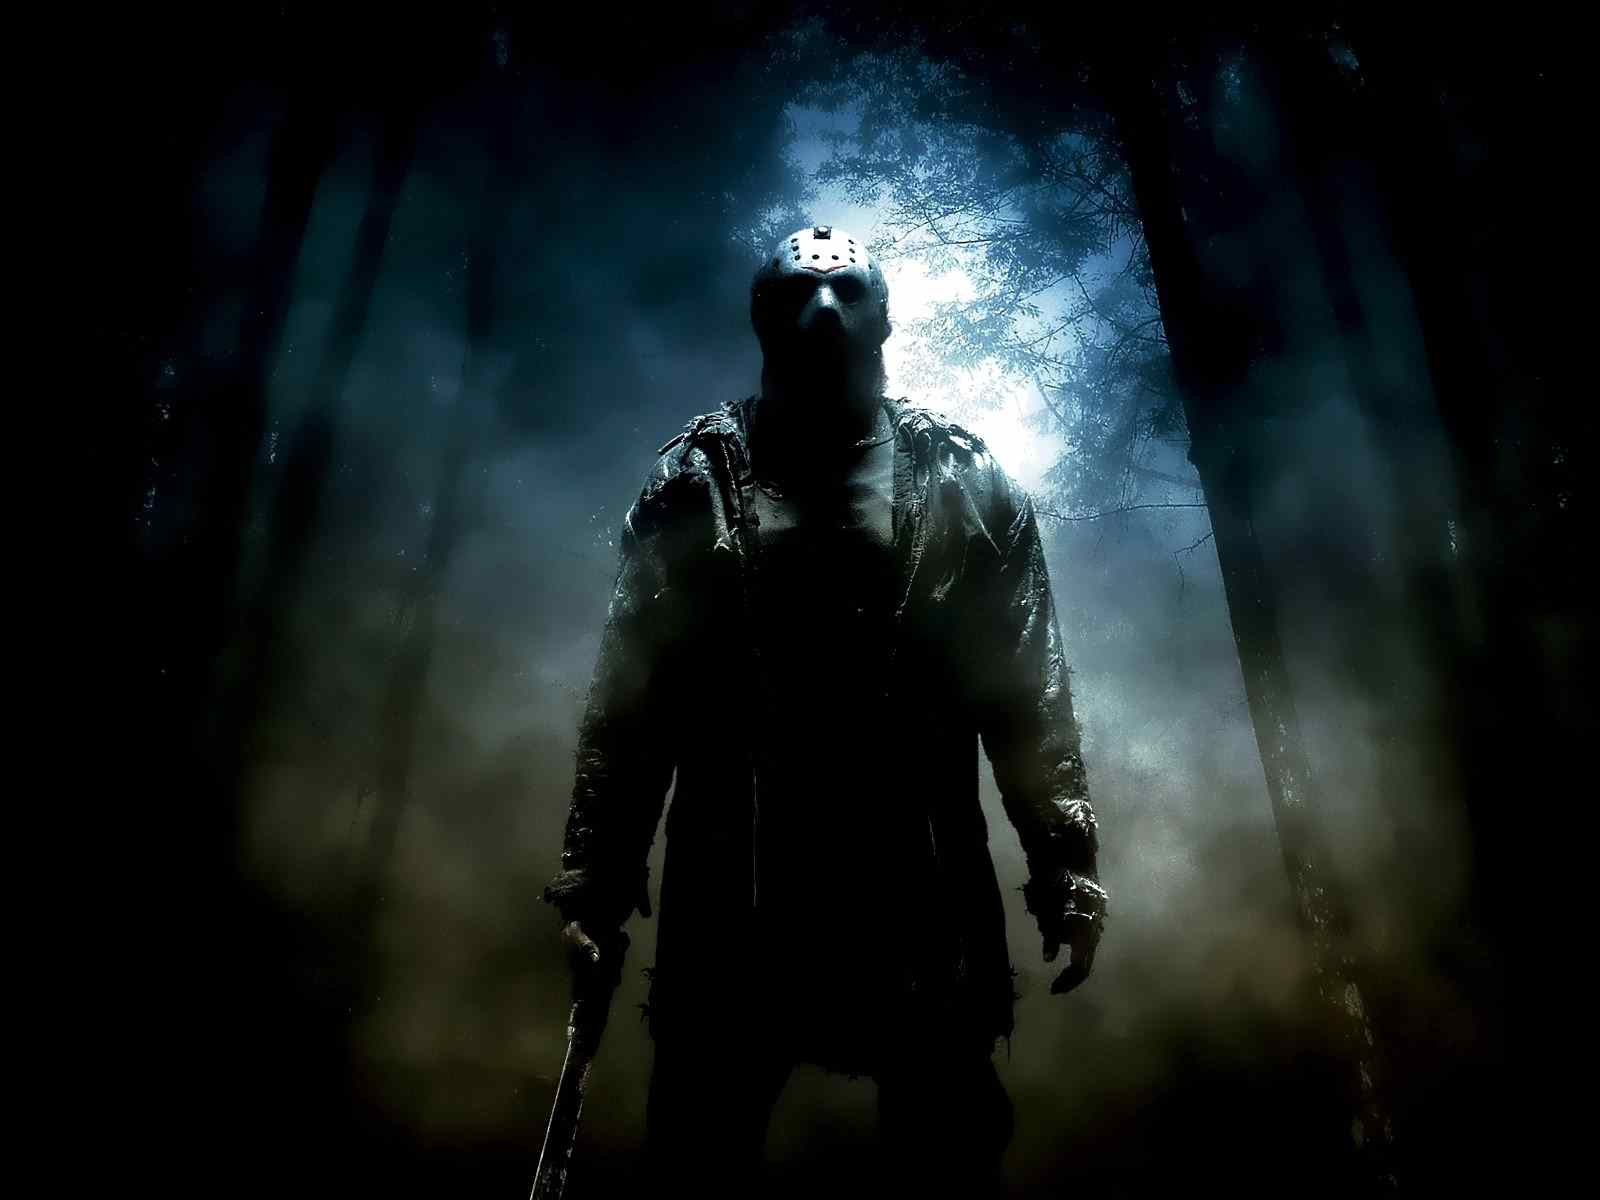 Friday the 13th. All the actors who have helped shape the character Jason Voorhees from friday the 13th.